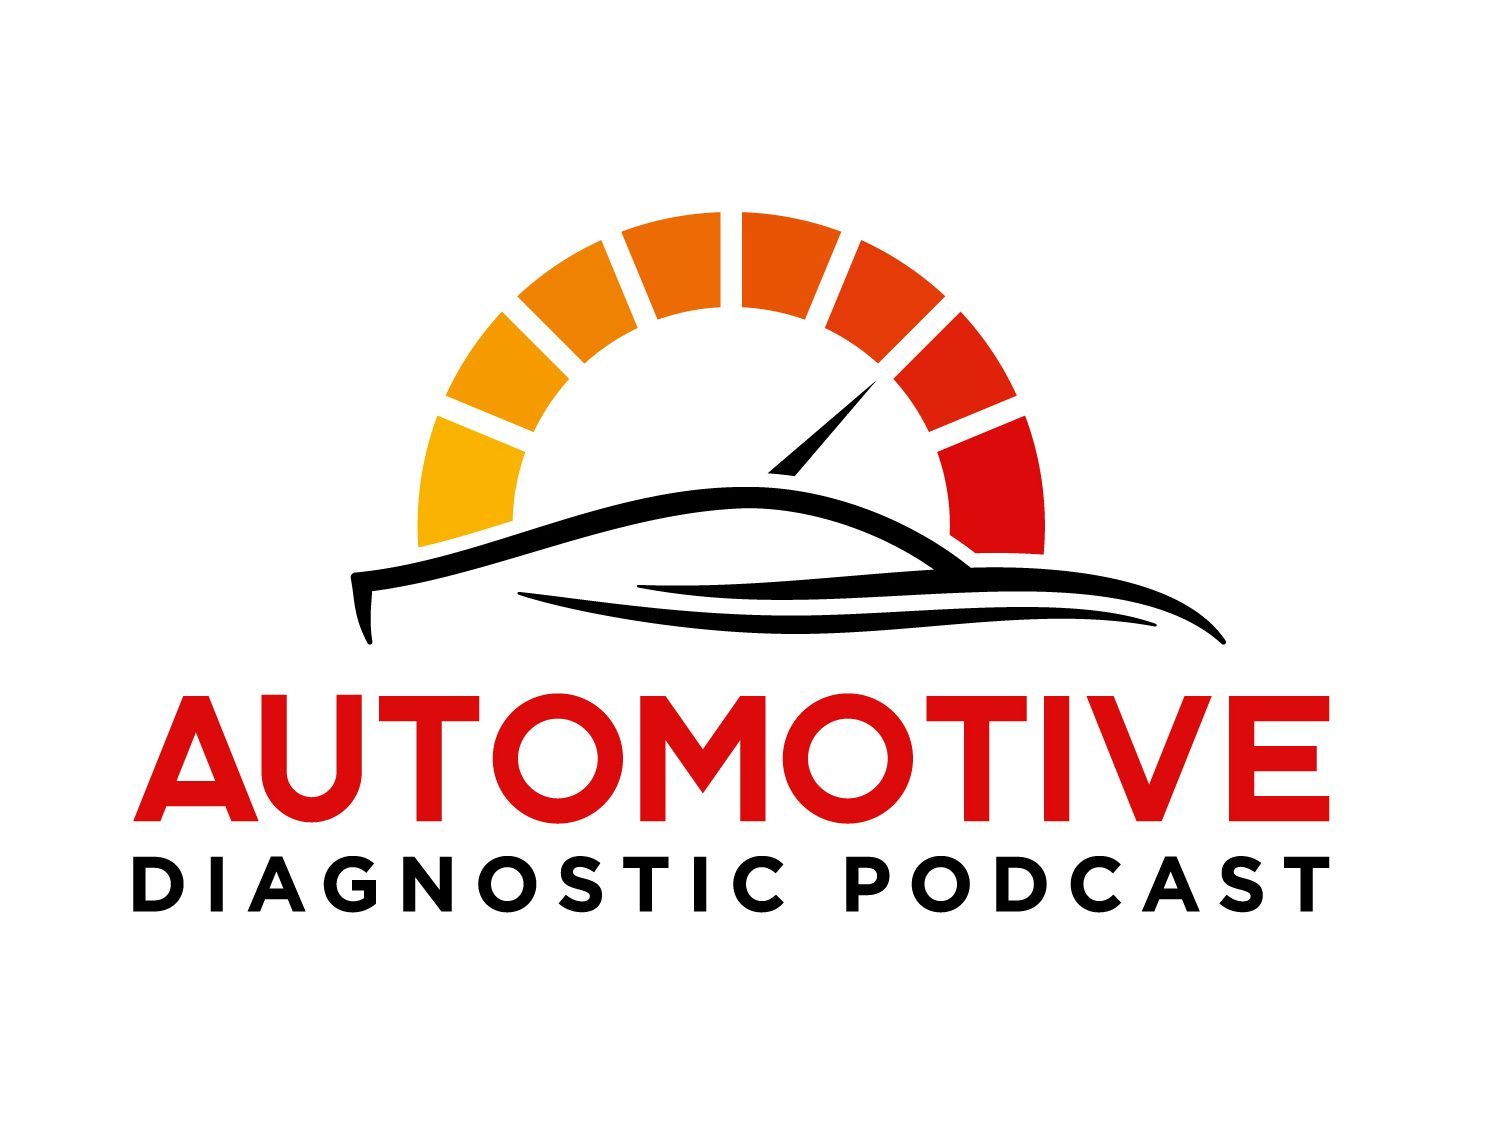 Automotive Diagnostic Podcast